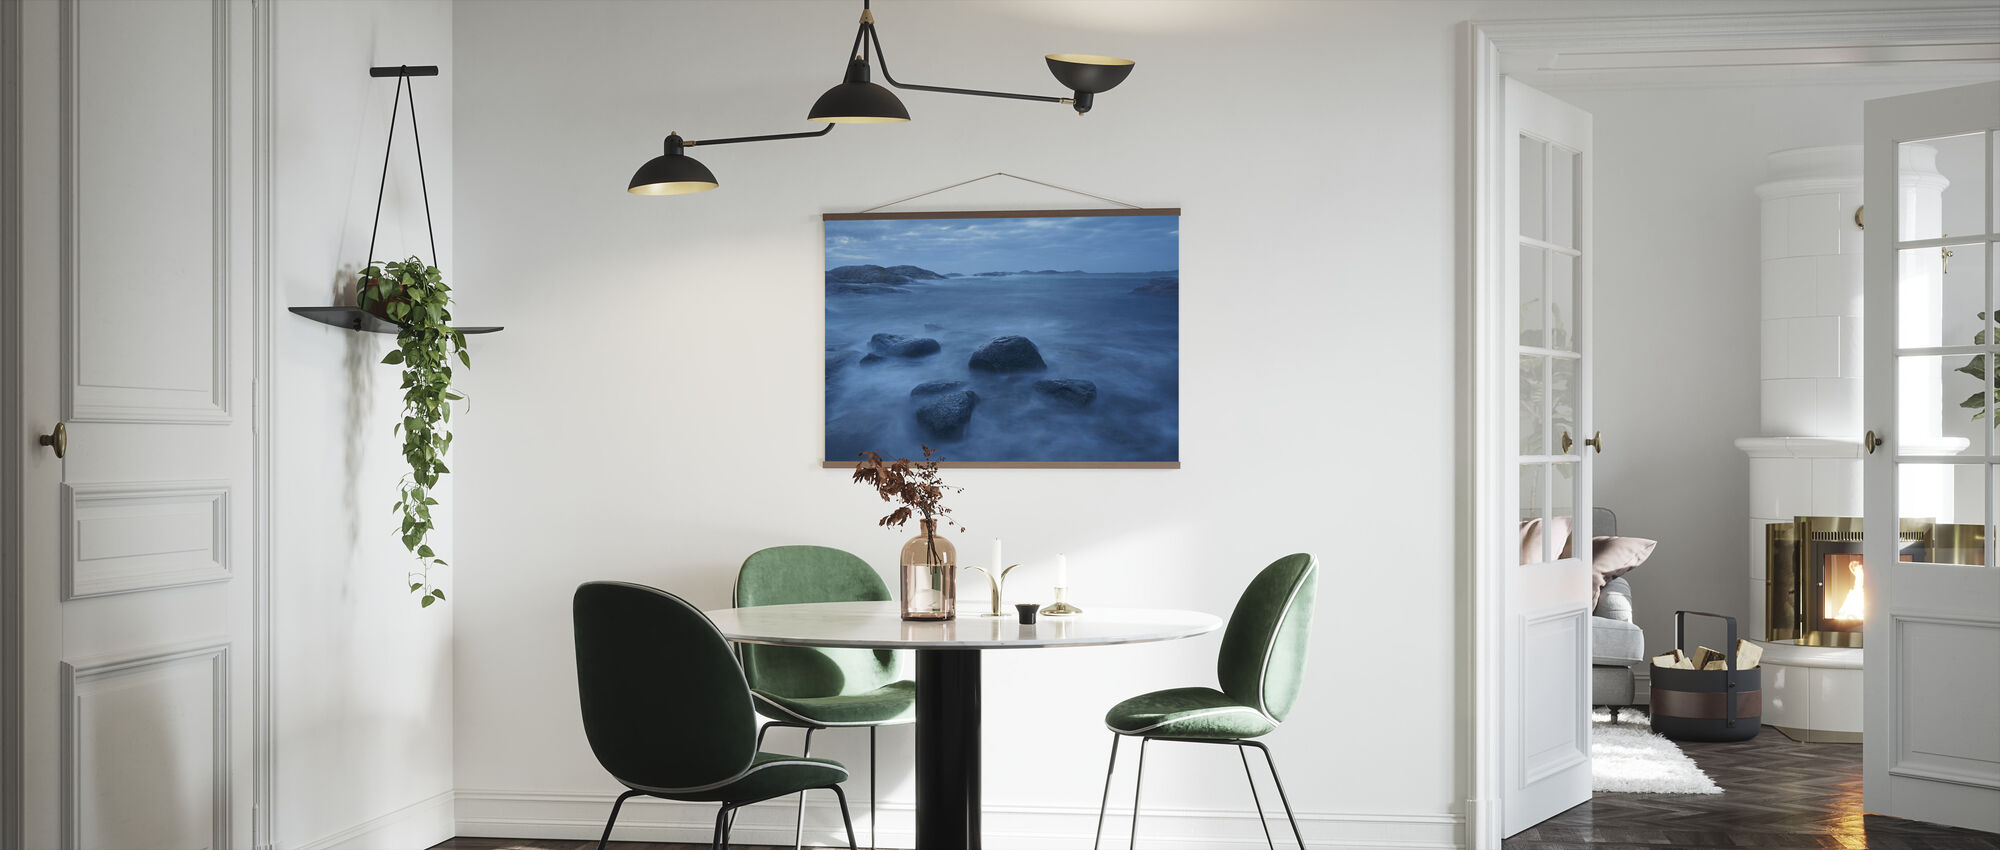 Stormy Clouds over Sea - Poster - Kitchen